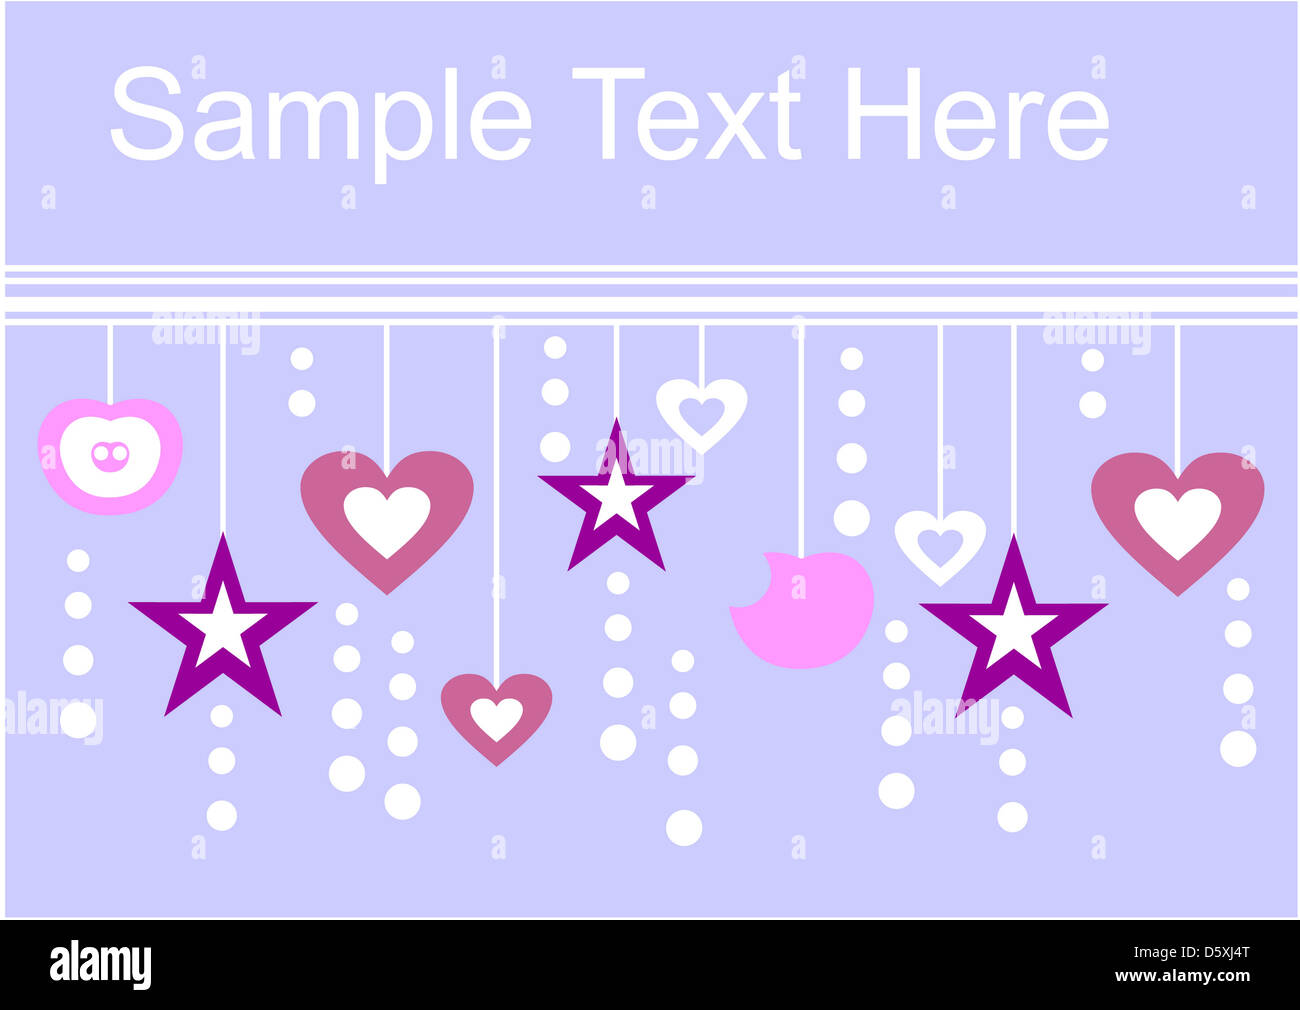 Holiday textspace in color 01 - Stock Image